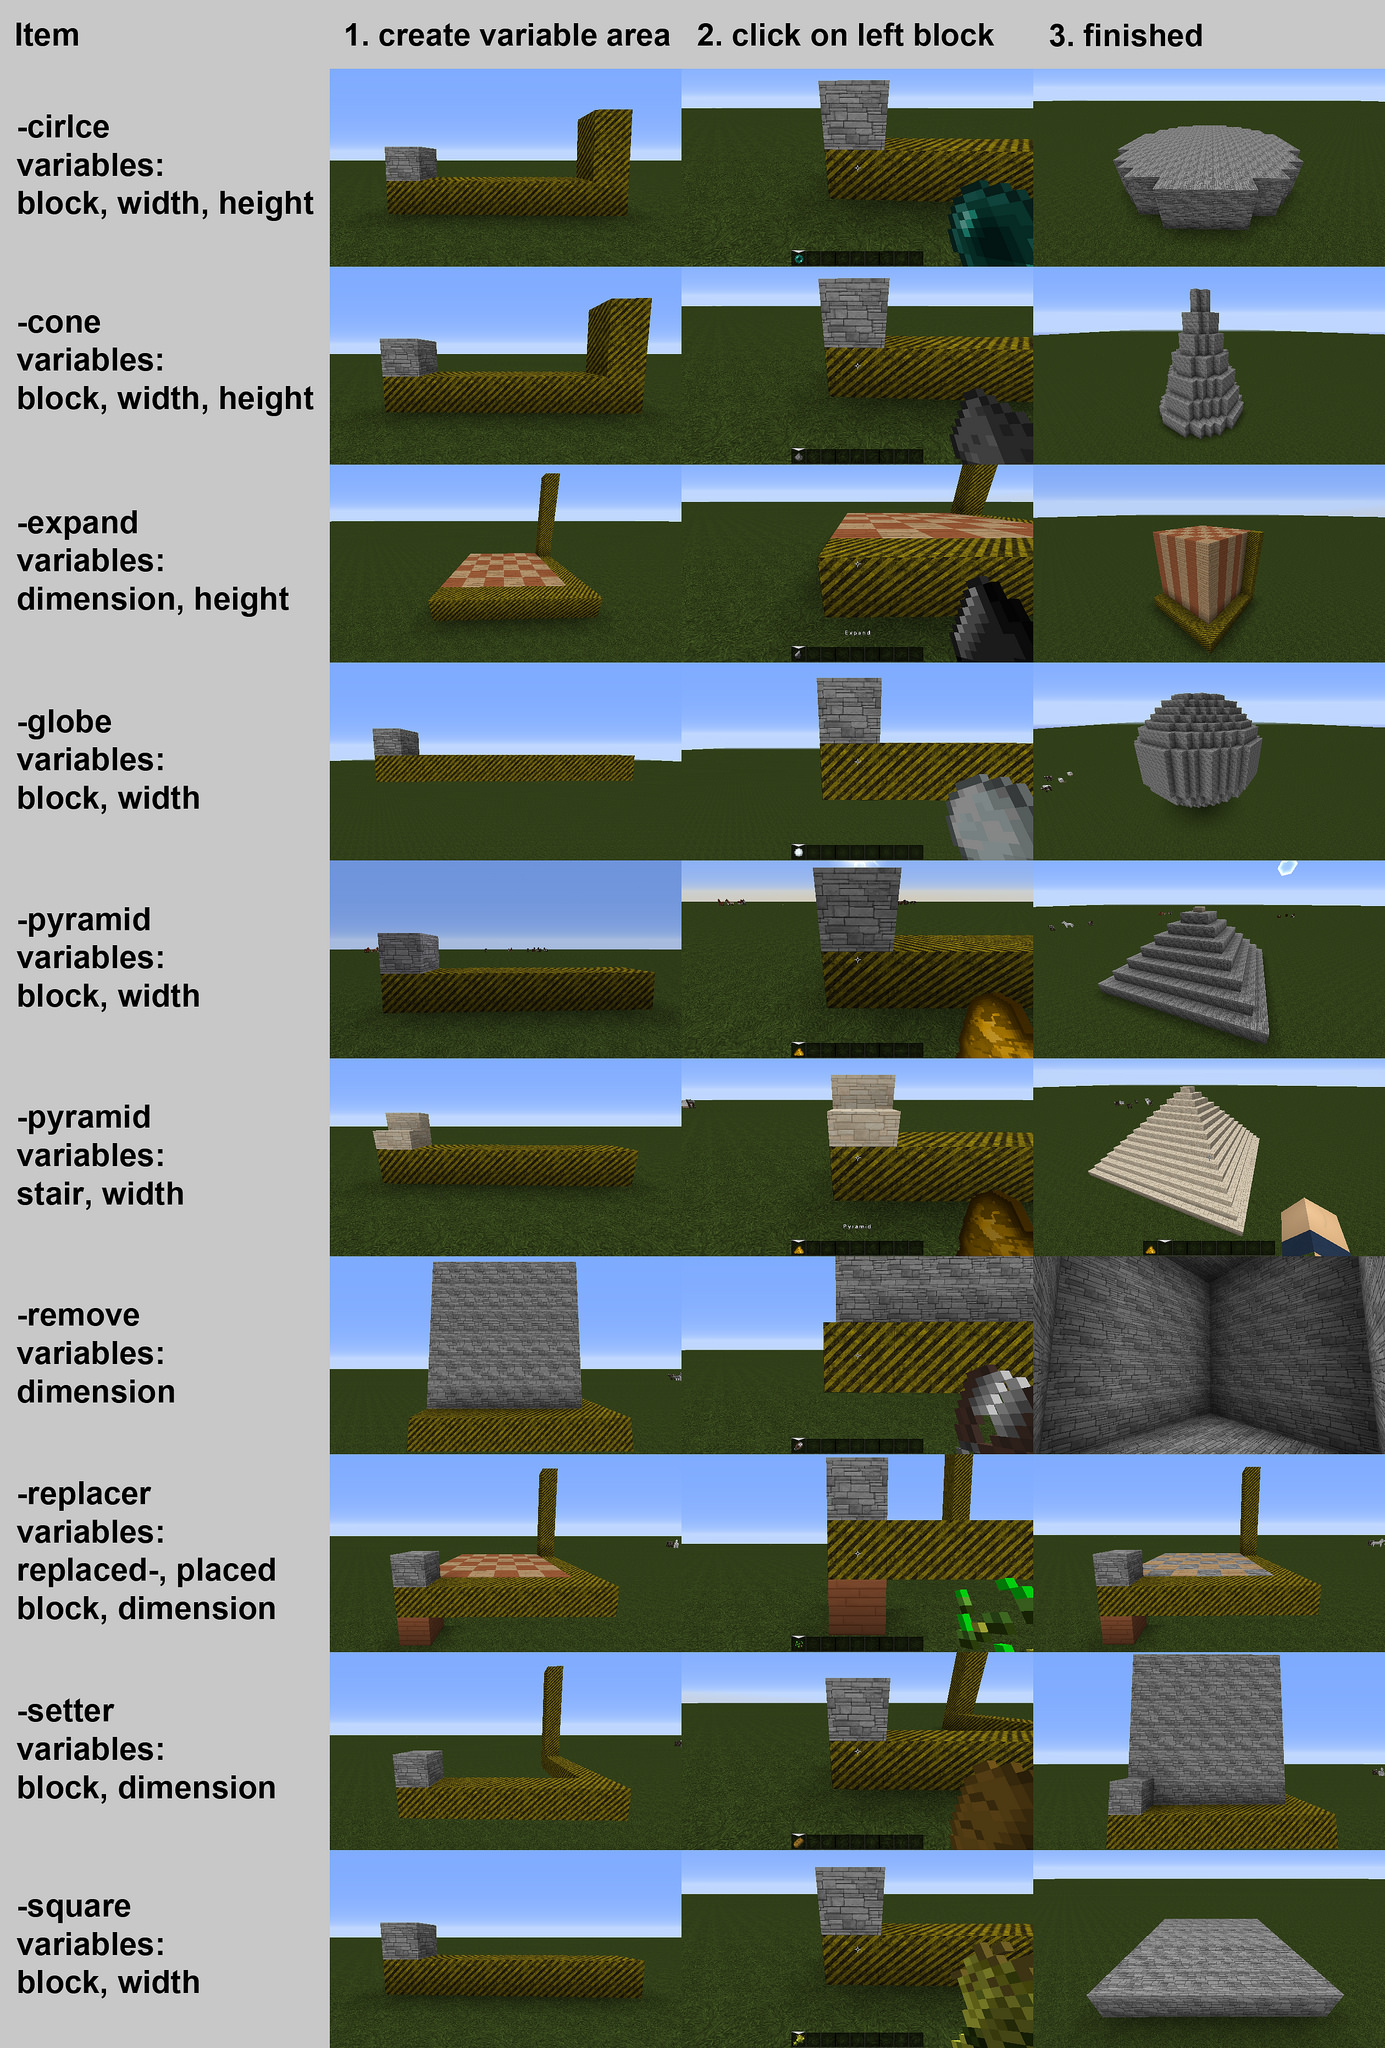 1481382083_431_instant-structures-mod-by-maggicraft-1-111-10-21-7-10 Instant Structures Mod by MaggiCraft 1.11/1.10.2/1.7.10